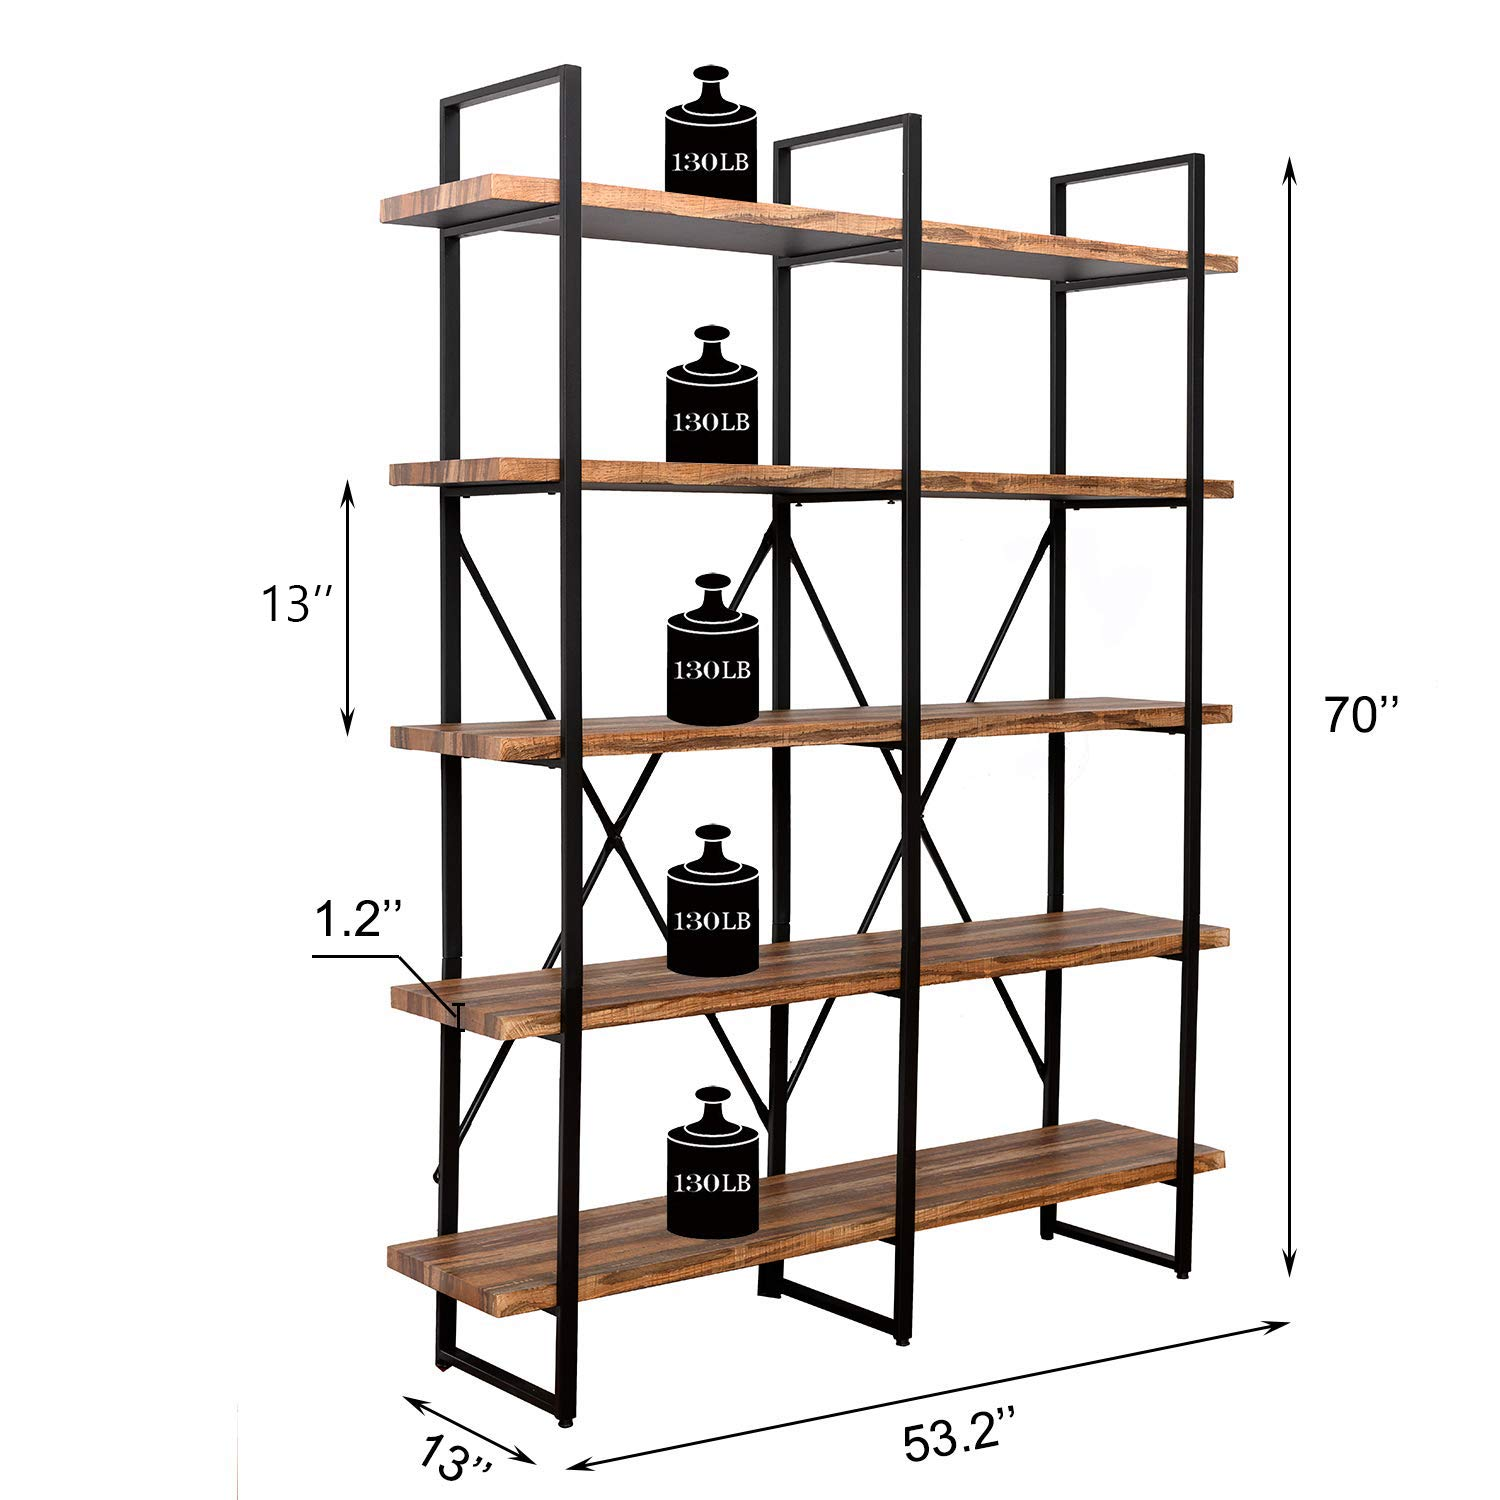 IRONCK Bookshelf, Double Wide 5-Tier Open Bookcase Vintage Industrial Large Shelves, Wood and Metal Etagere Bookshelves, for Home Decor Display, Office Furniture by IRONCK (Image #3)